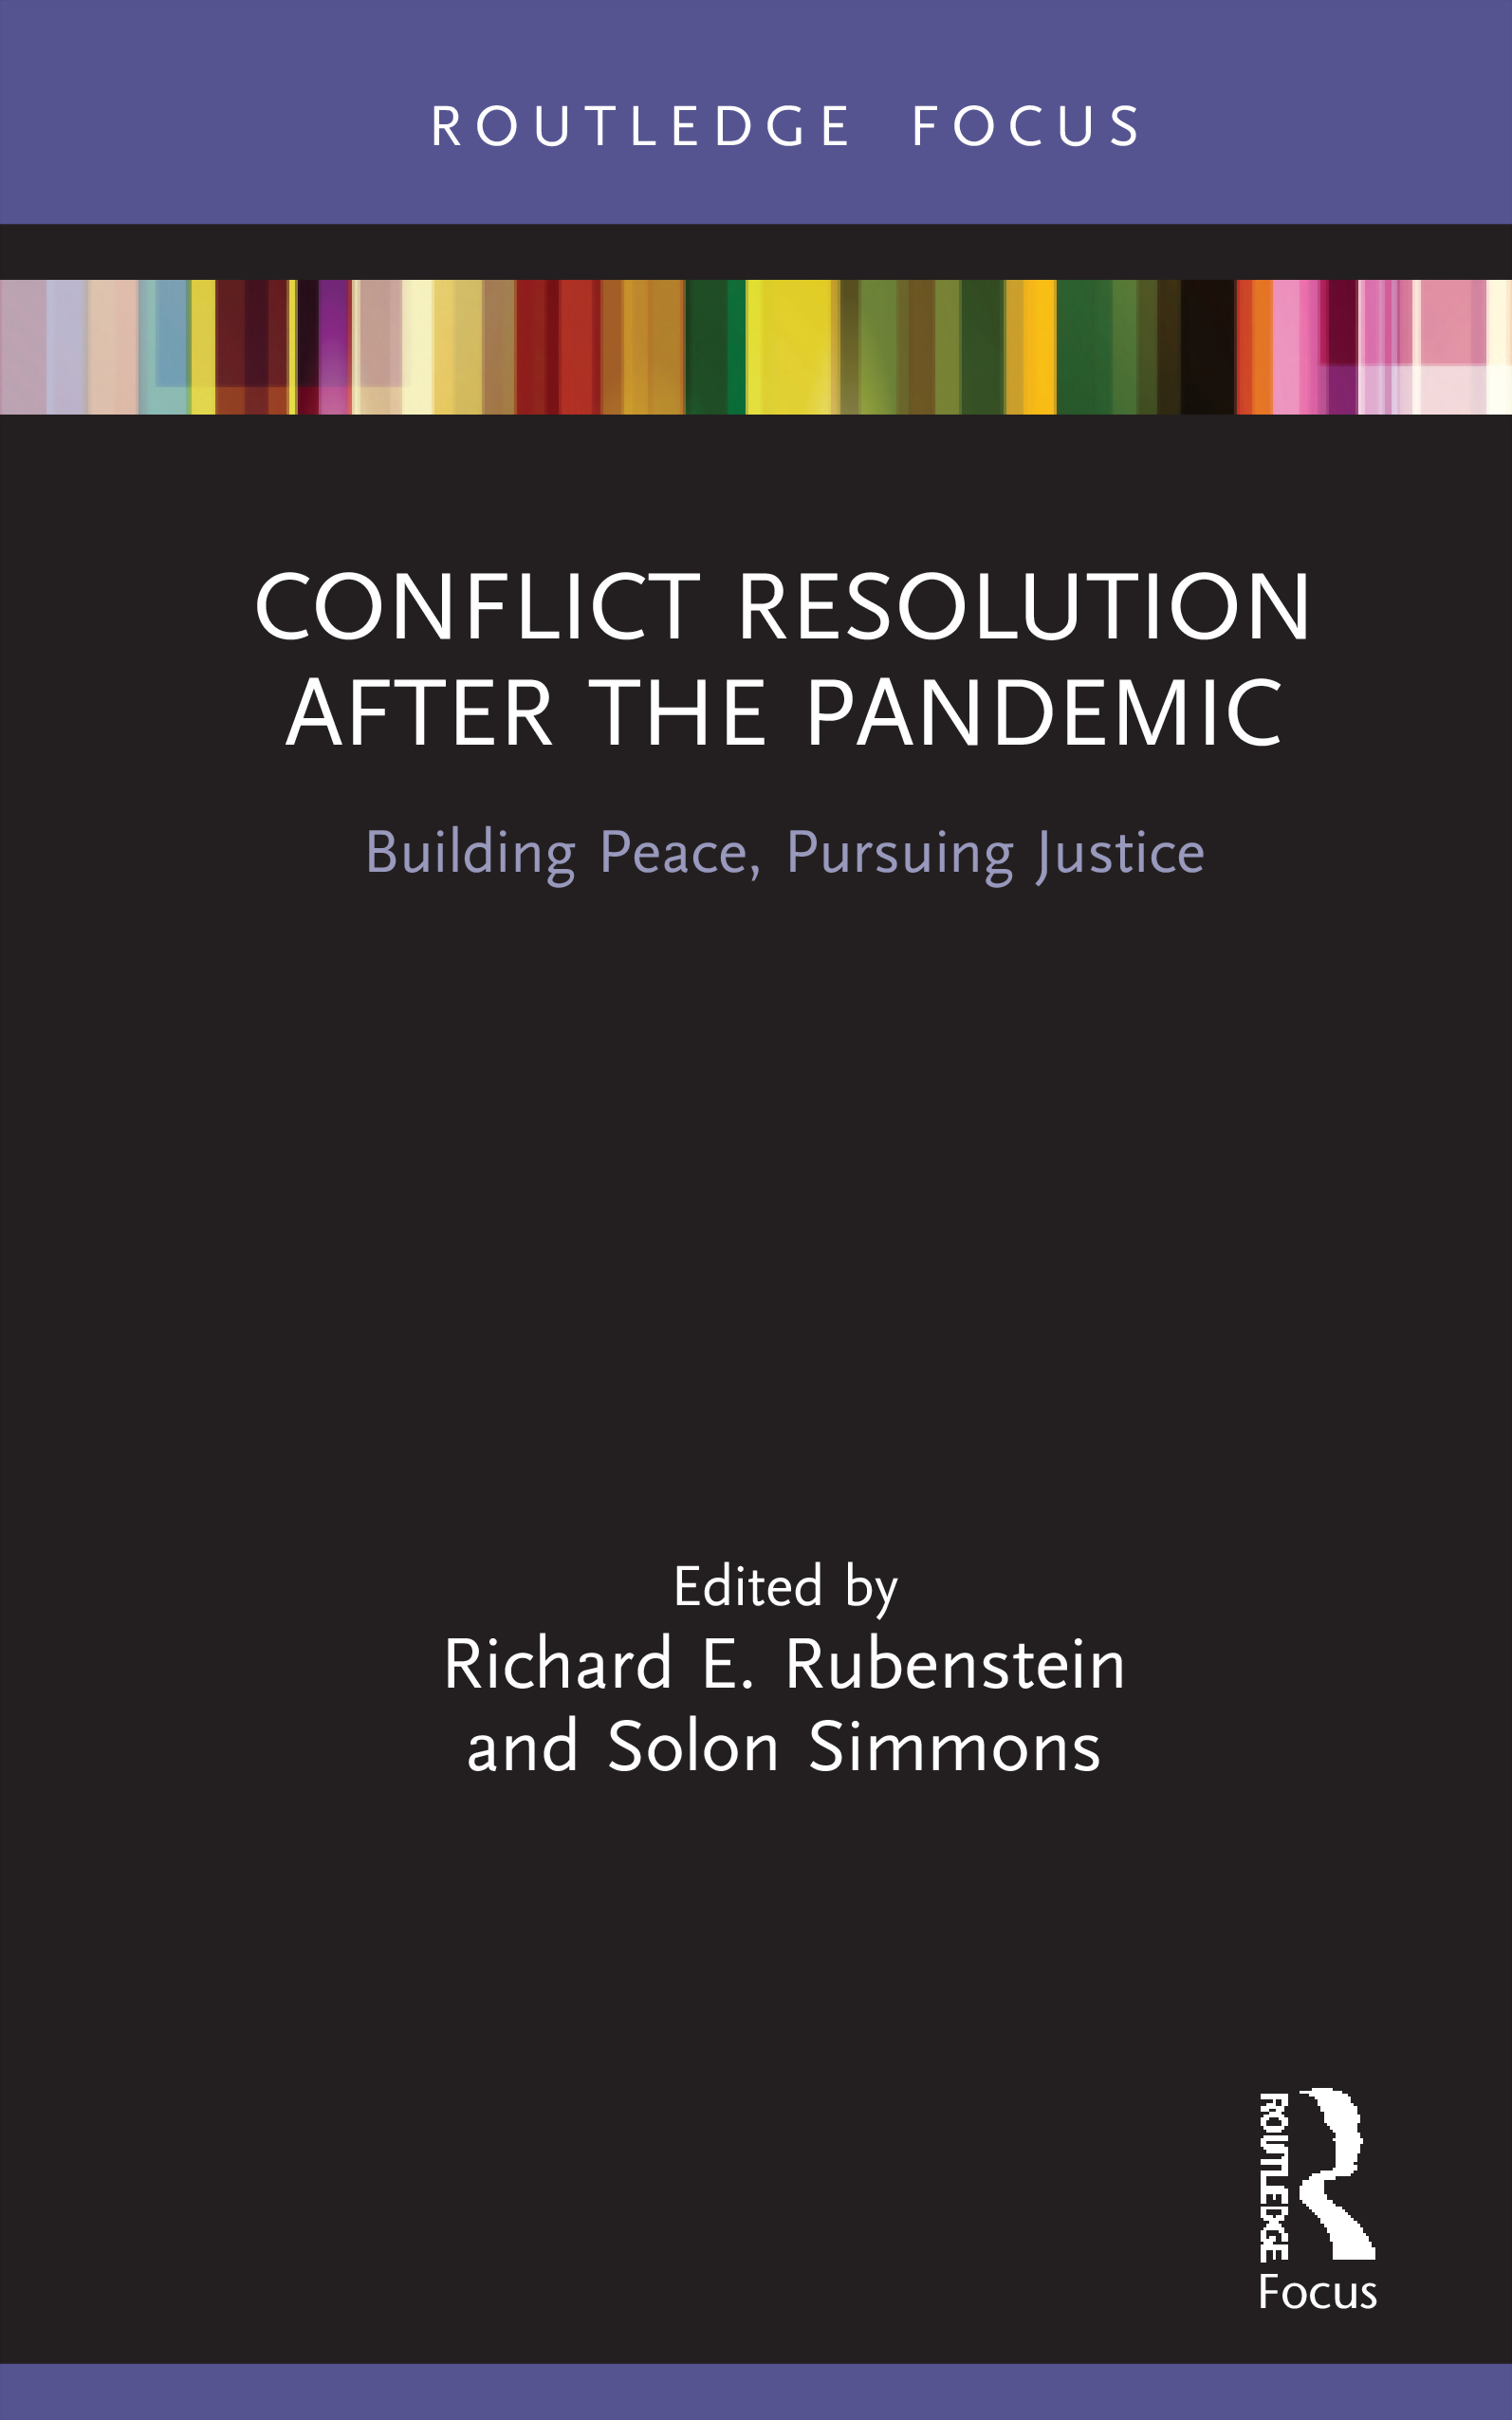 Pandemics, globalization, and contentious politics